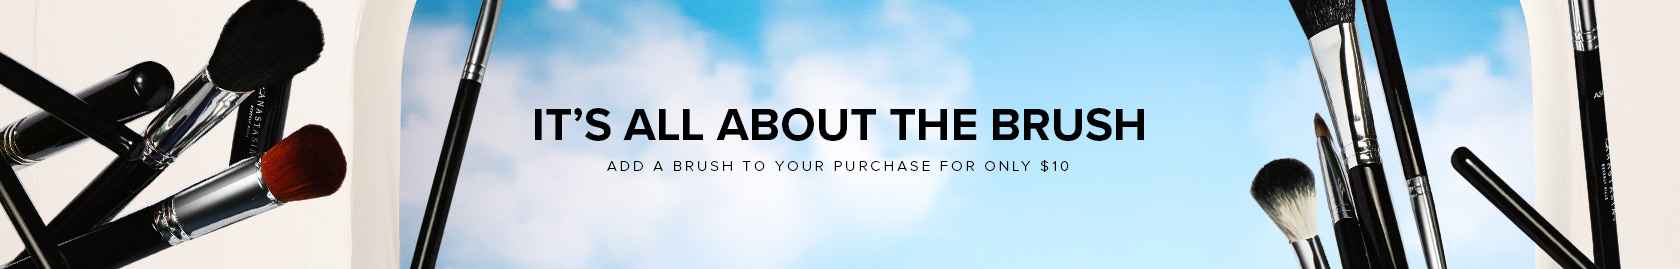 It's All About the Brush   Add a Brush to Your Purchase for Only $10